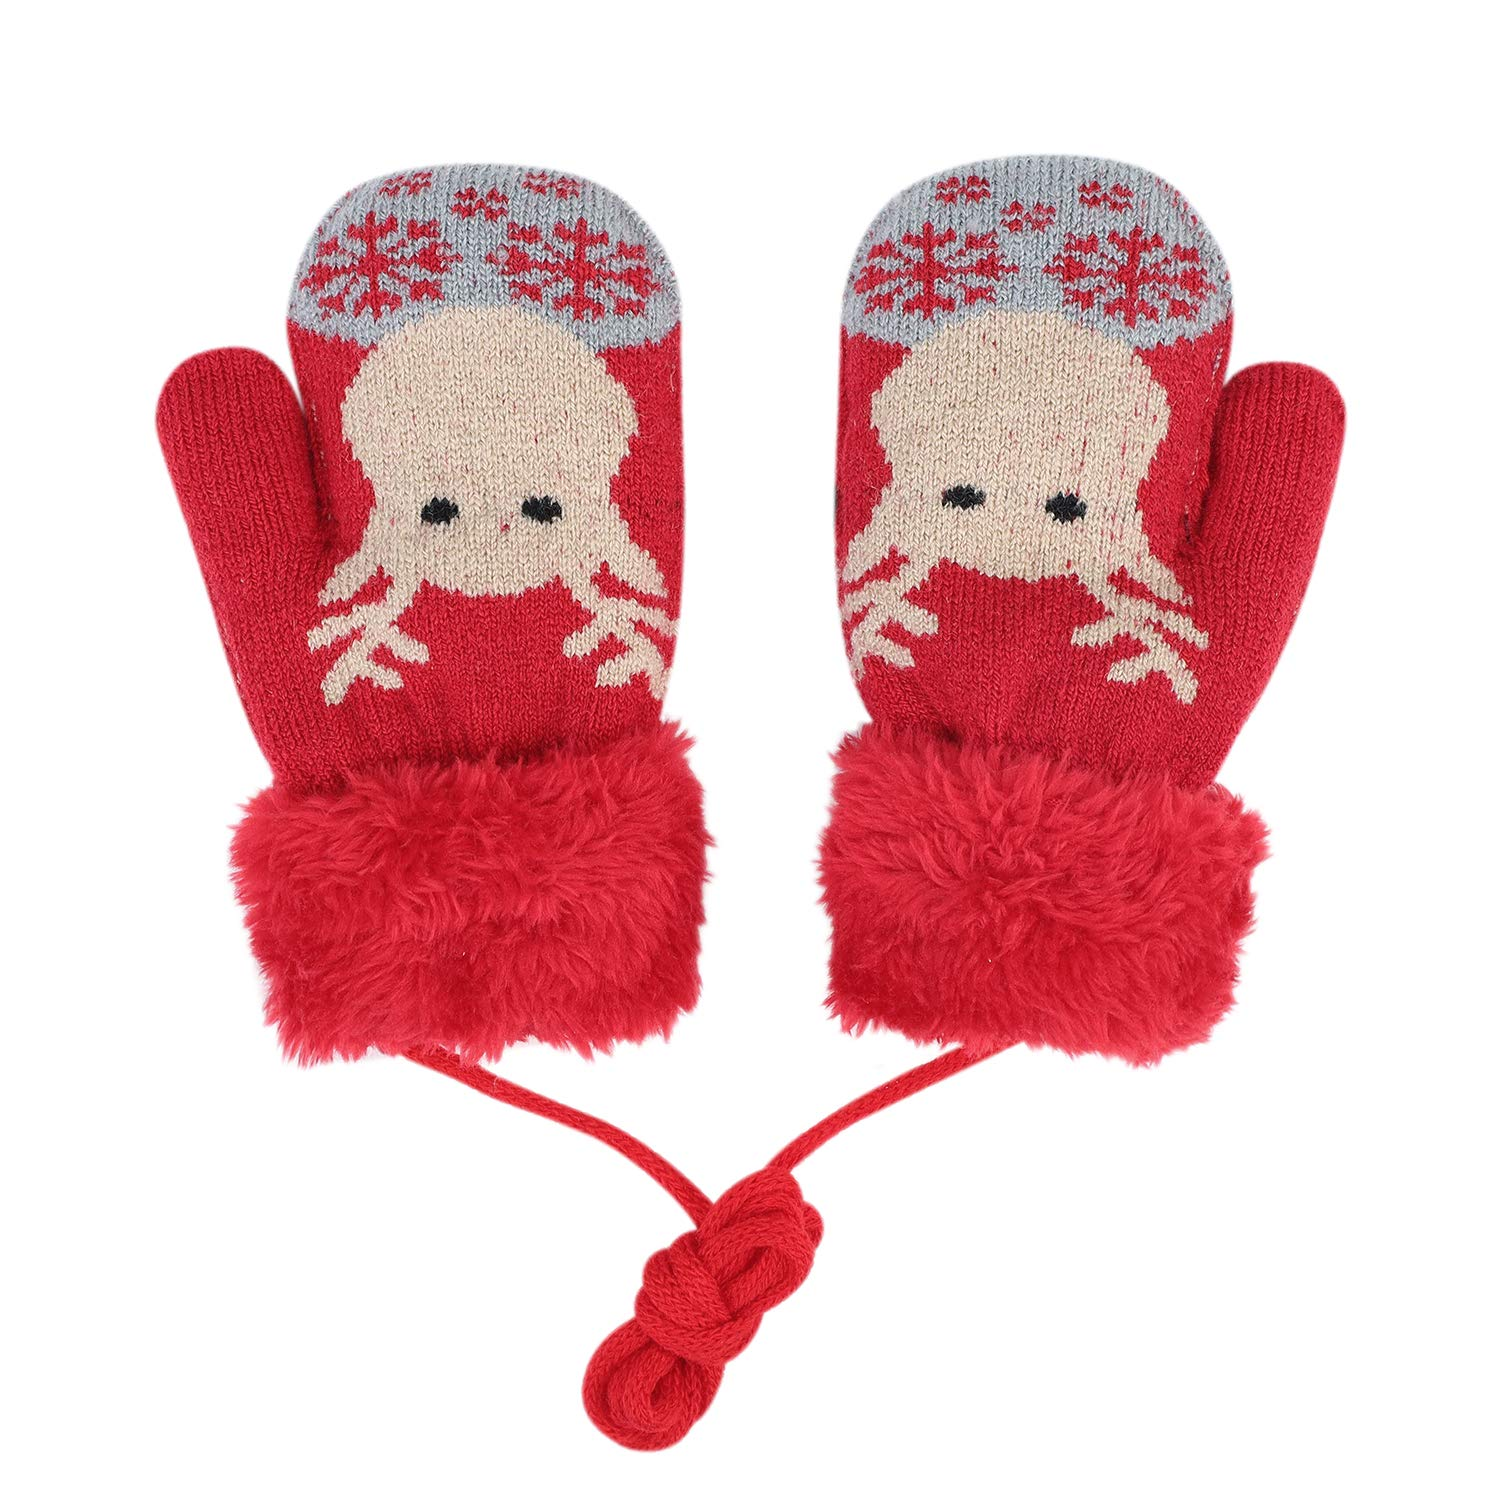 Kids Winter Gloves Girls Boys Knitted Mitten Cartoon Deer Thickened Animal Gloves Warm Fluffy Wrist Mittens With String Full Finger Gloves Children Christmas Gloves Aged 2-6